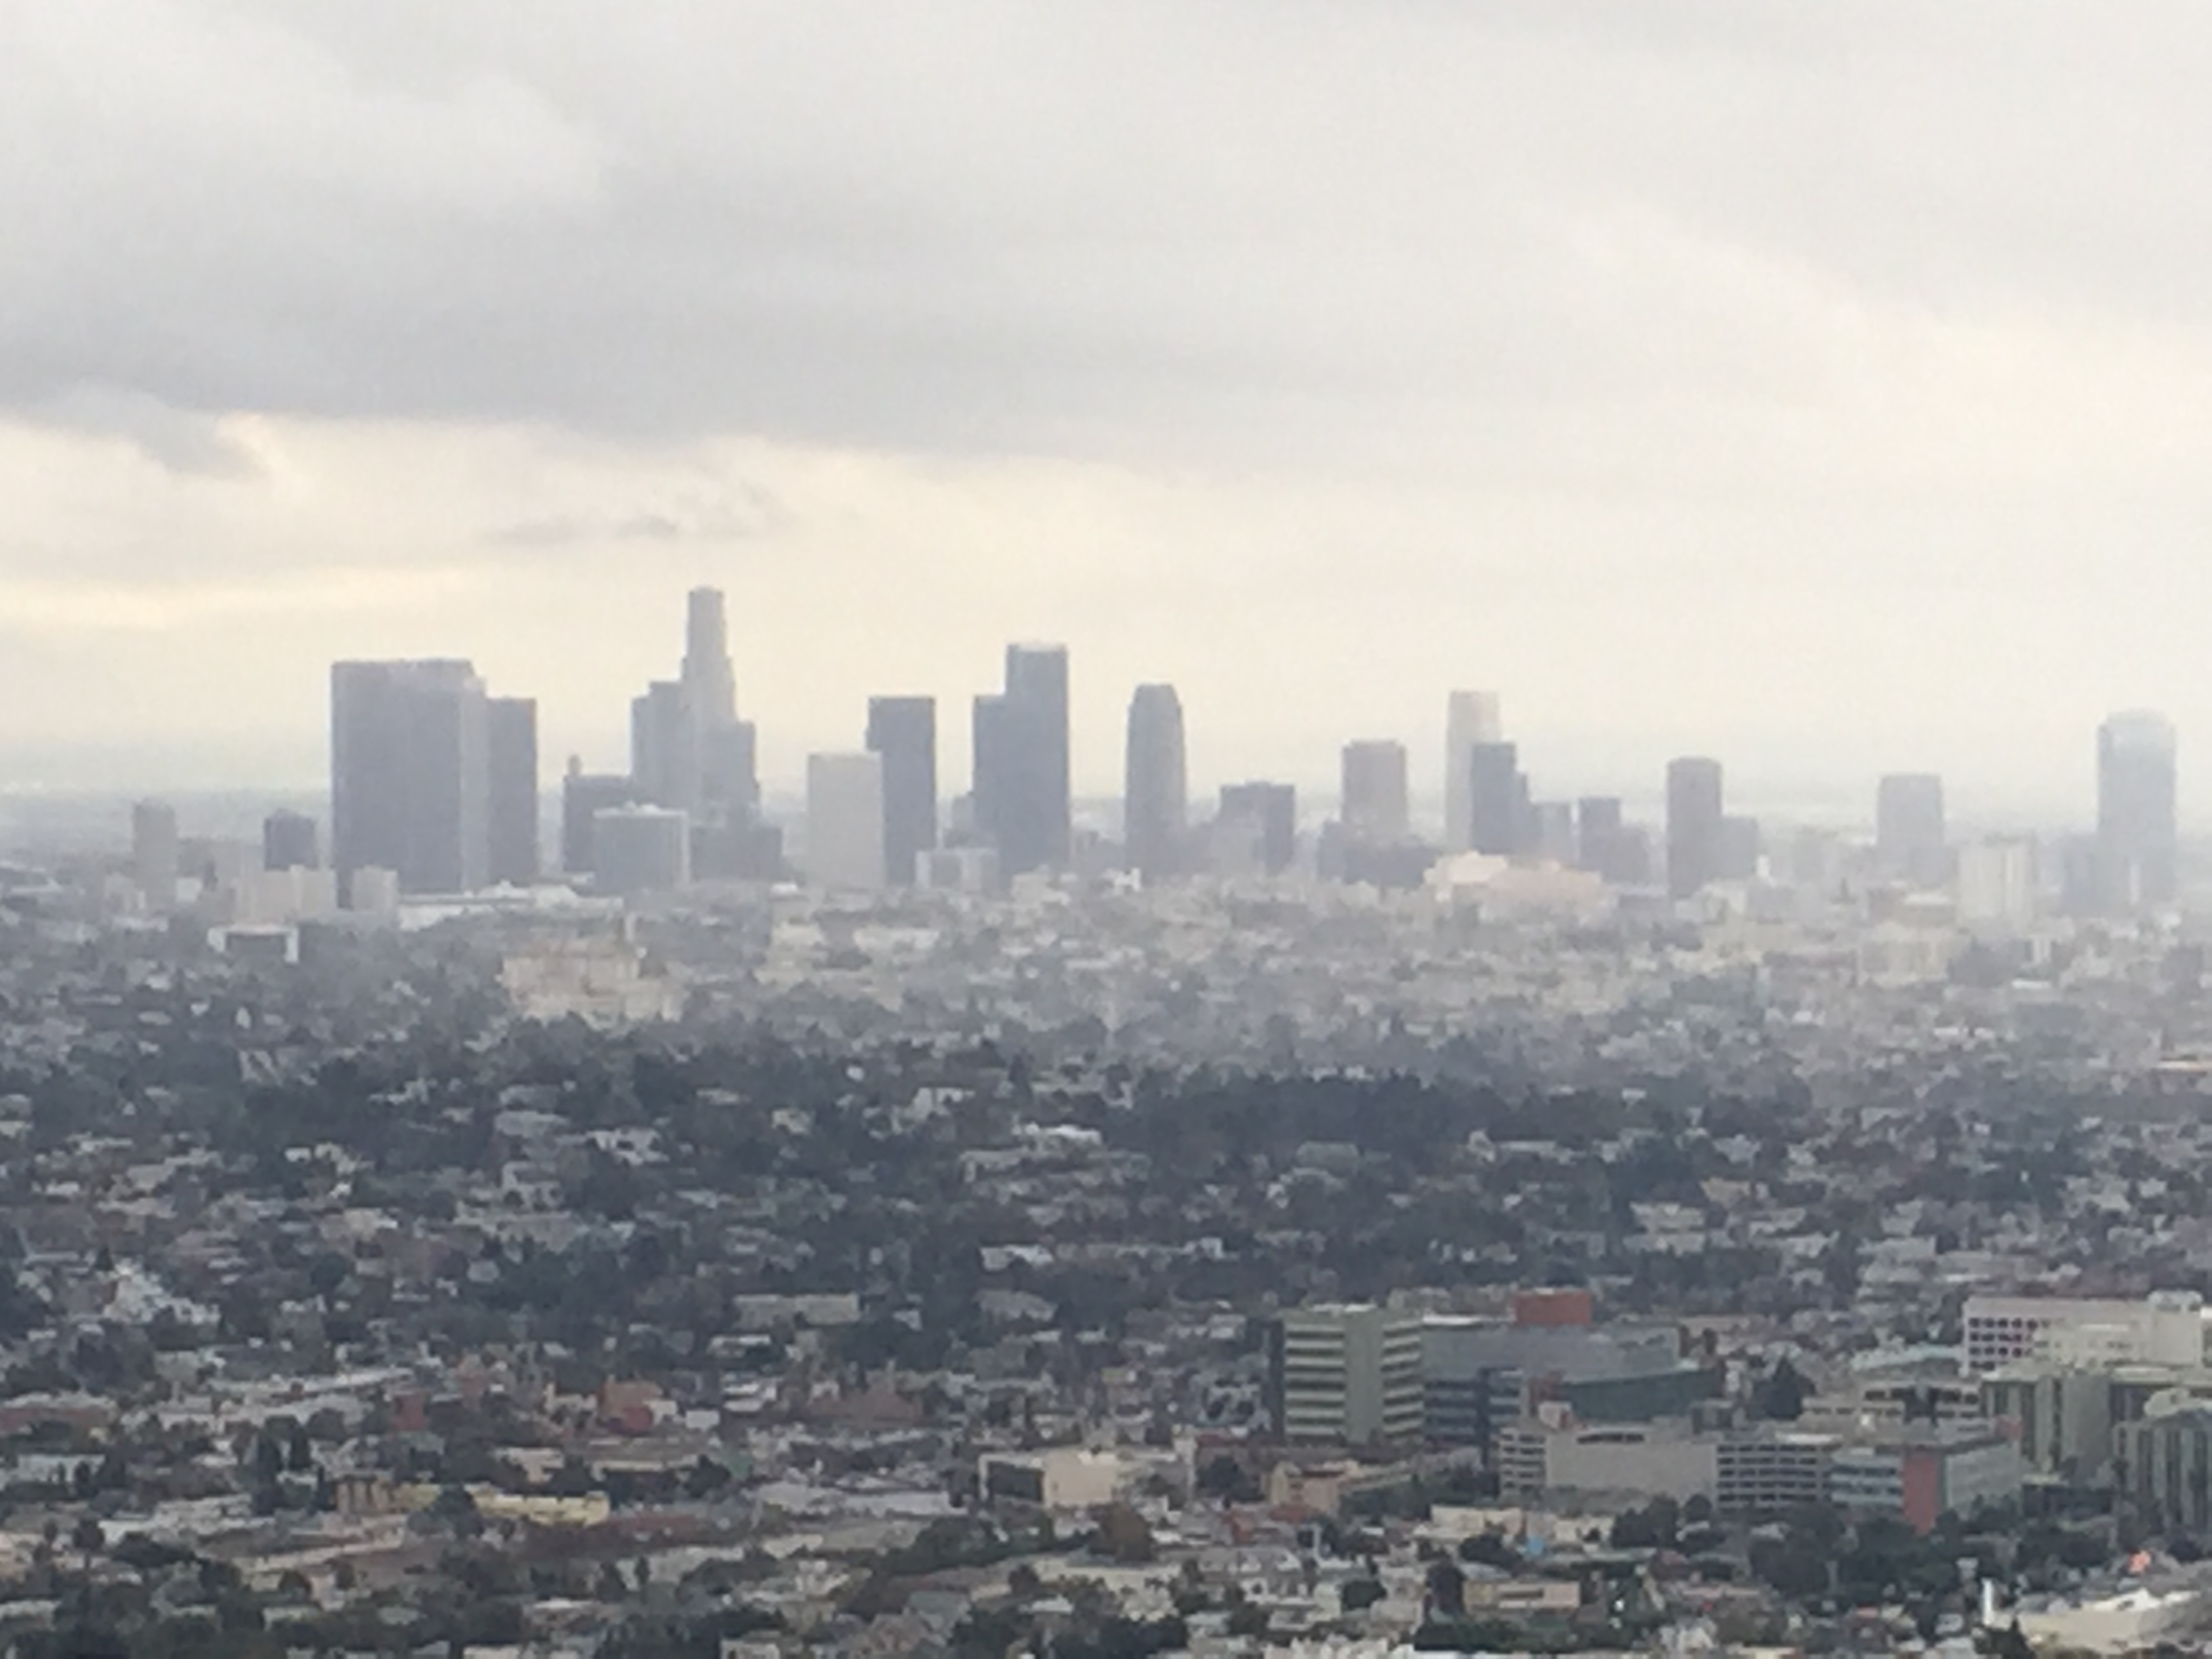 Downtown LA Skyline from Griffith Observatory.